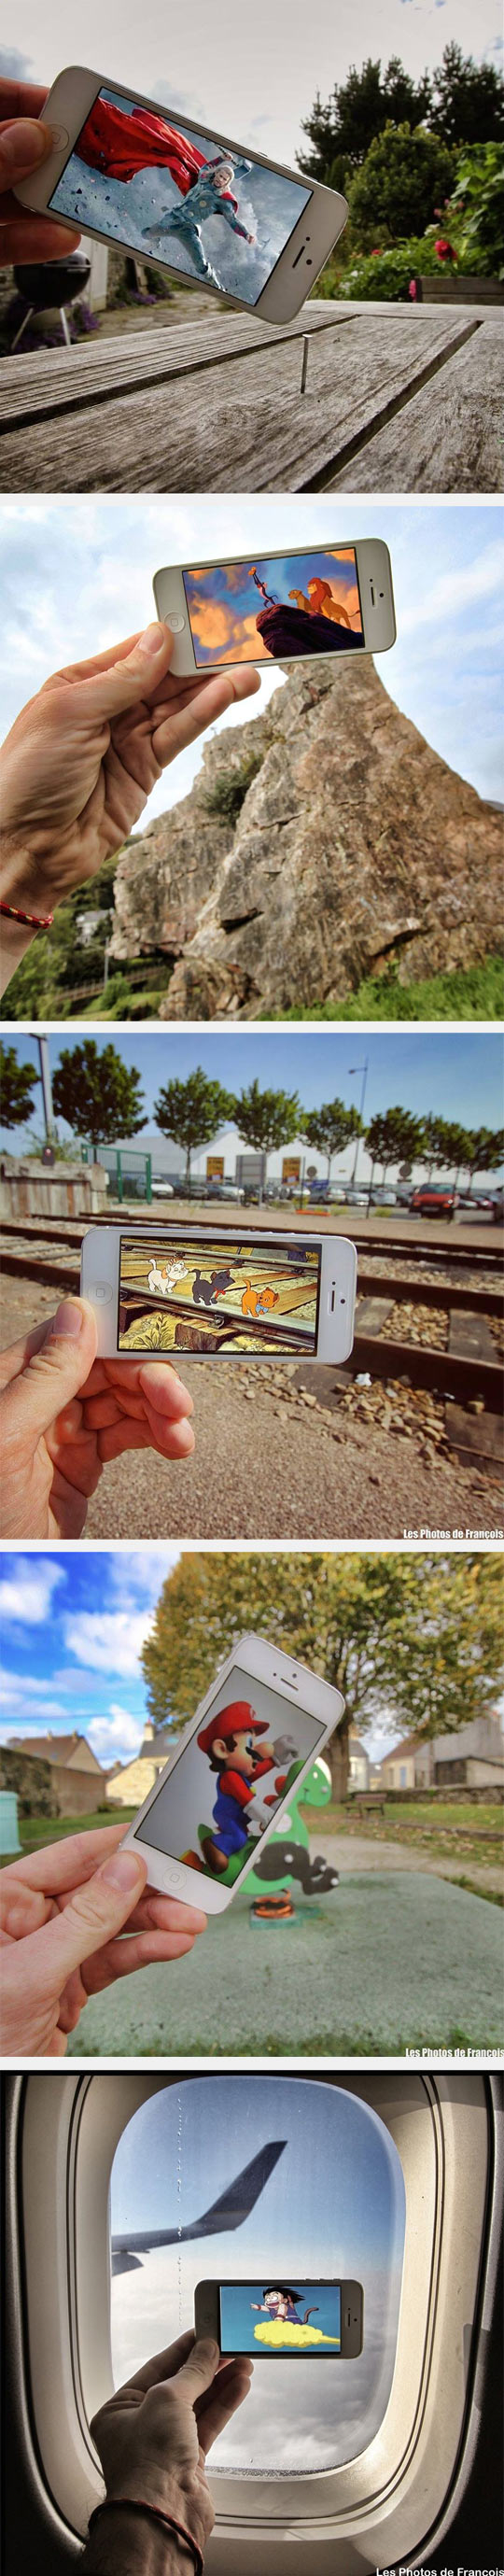 Awesome Phone-Reality Photo Series